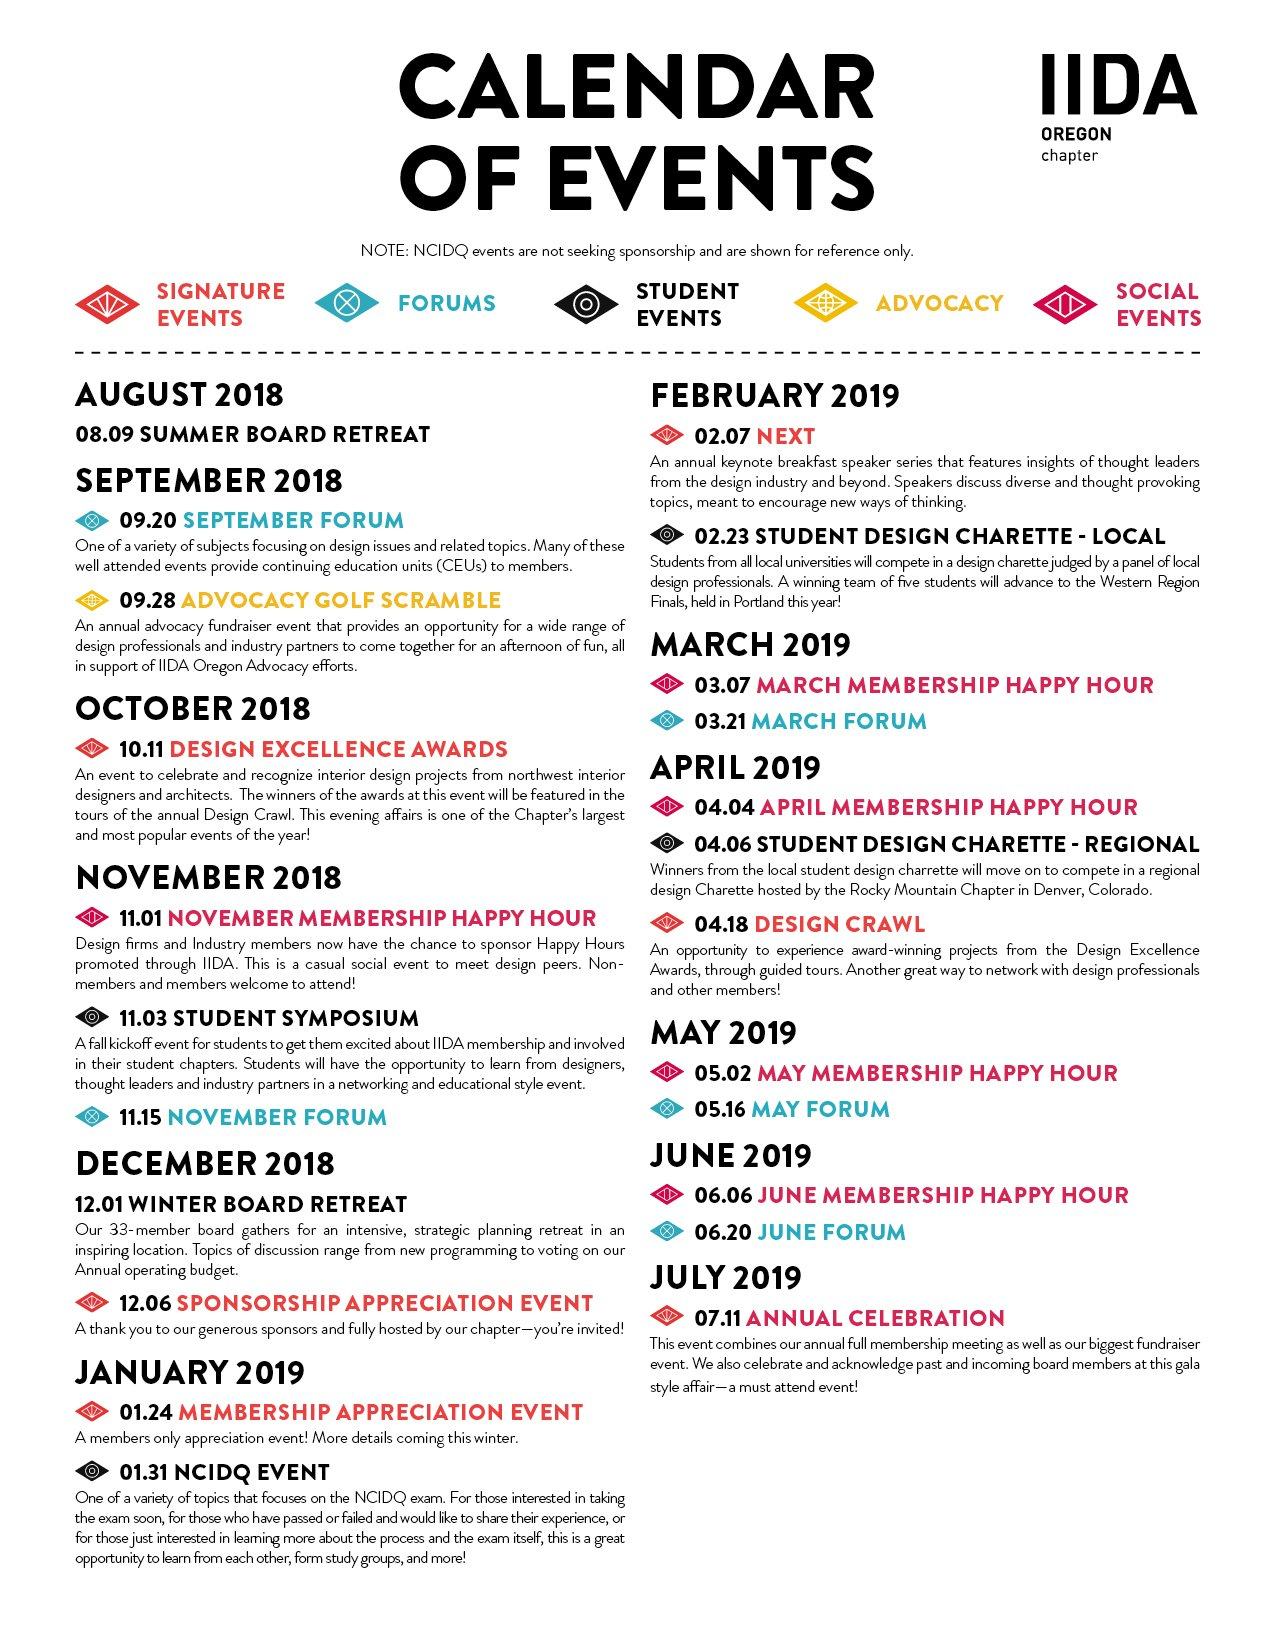 Calendar Of Events | Iida Oregon Chapter Calendar 2019 Of Events